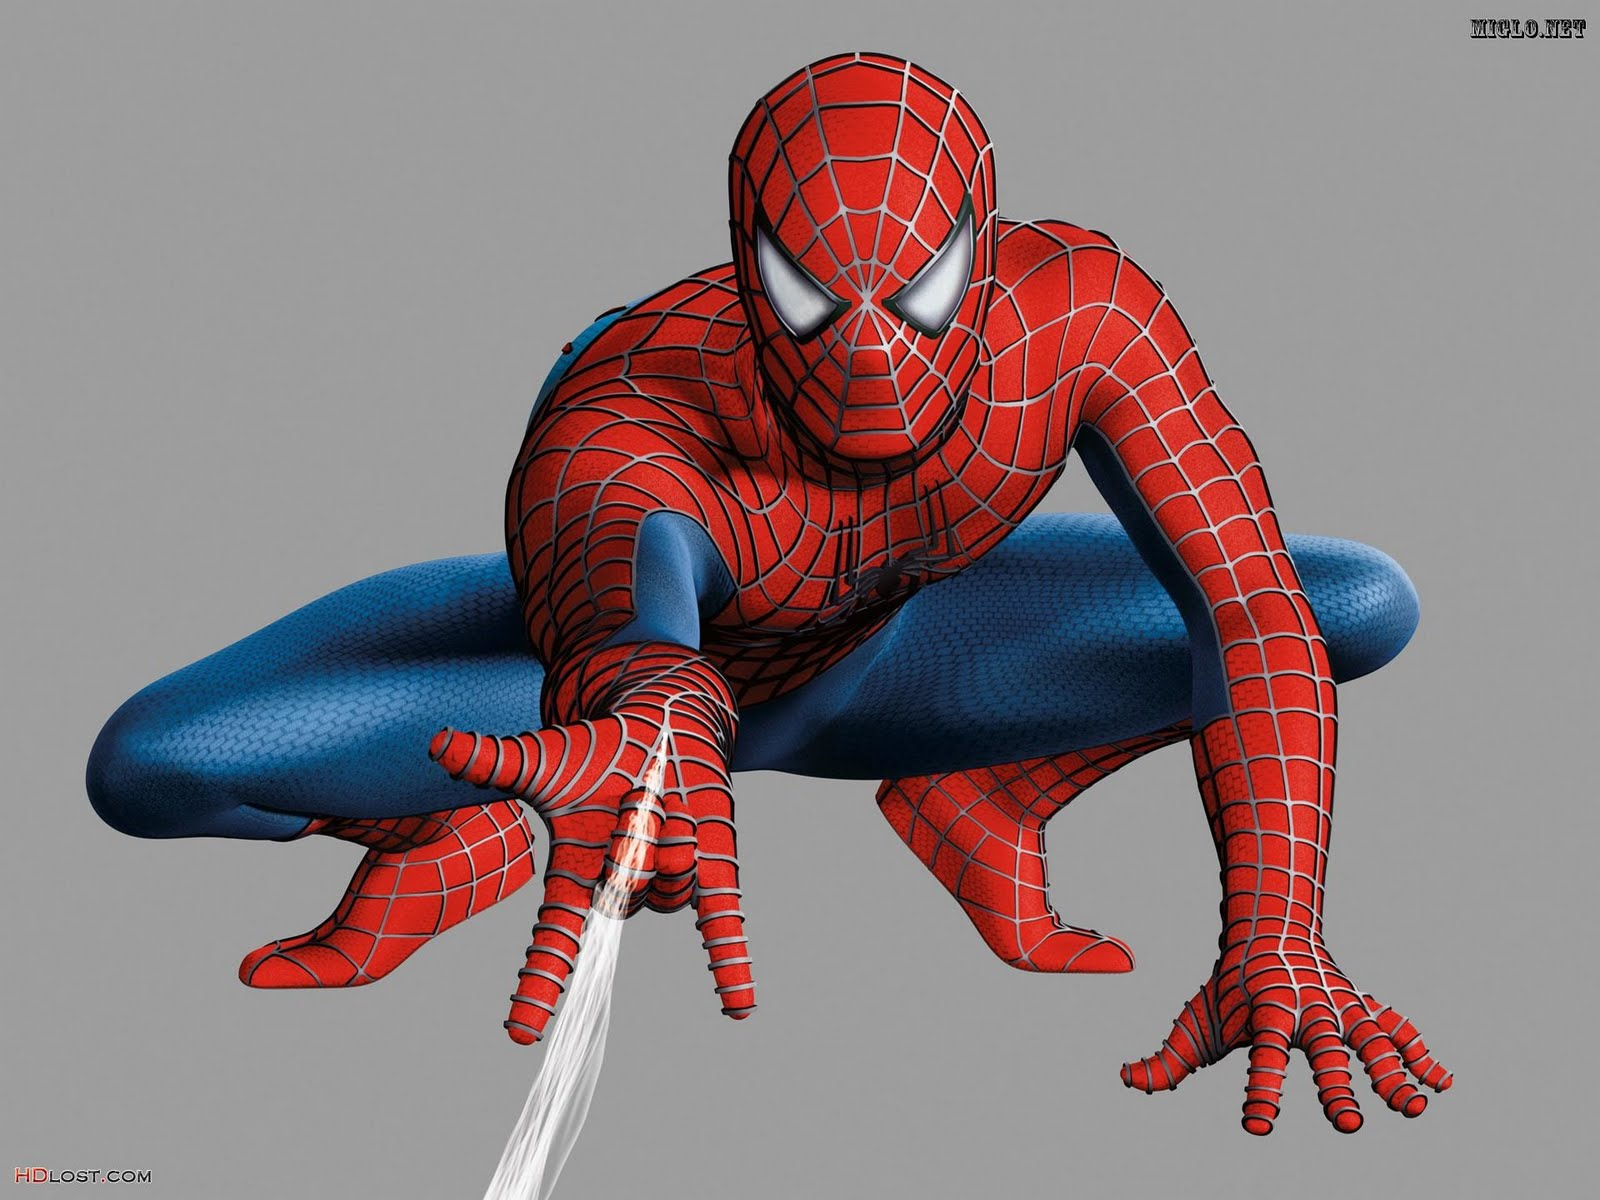 Amazing Wallpaper High Resolution Spiderman - wallpaper-fonds-decran-Spiderman%2B4  Graphic_23787.jpg